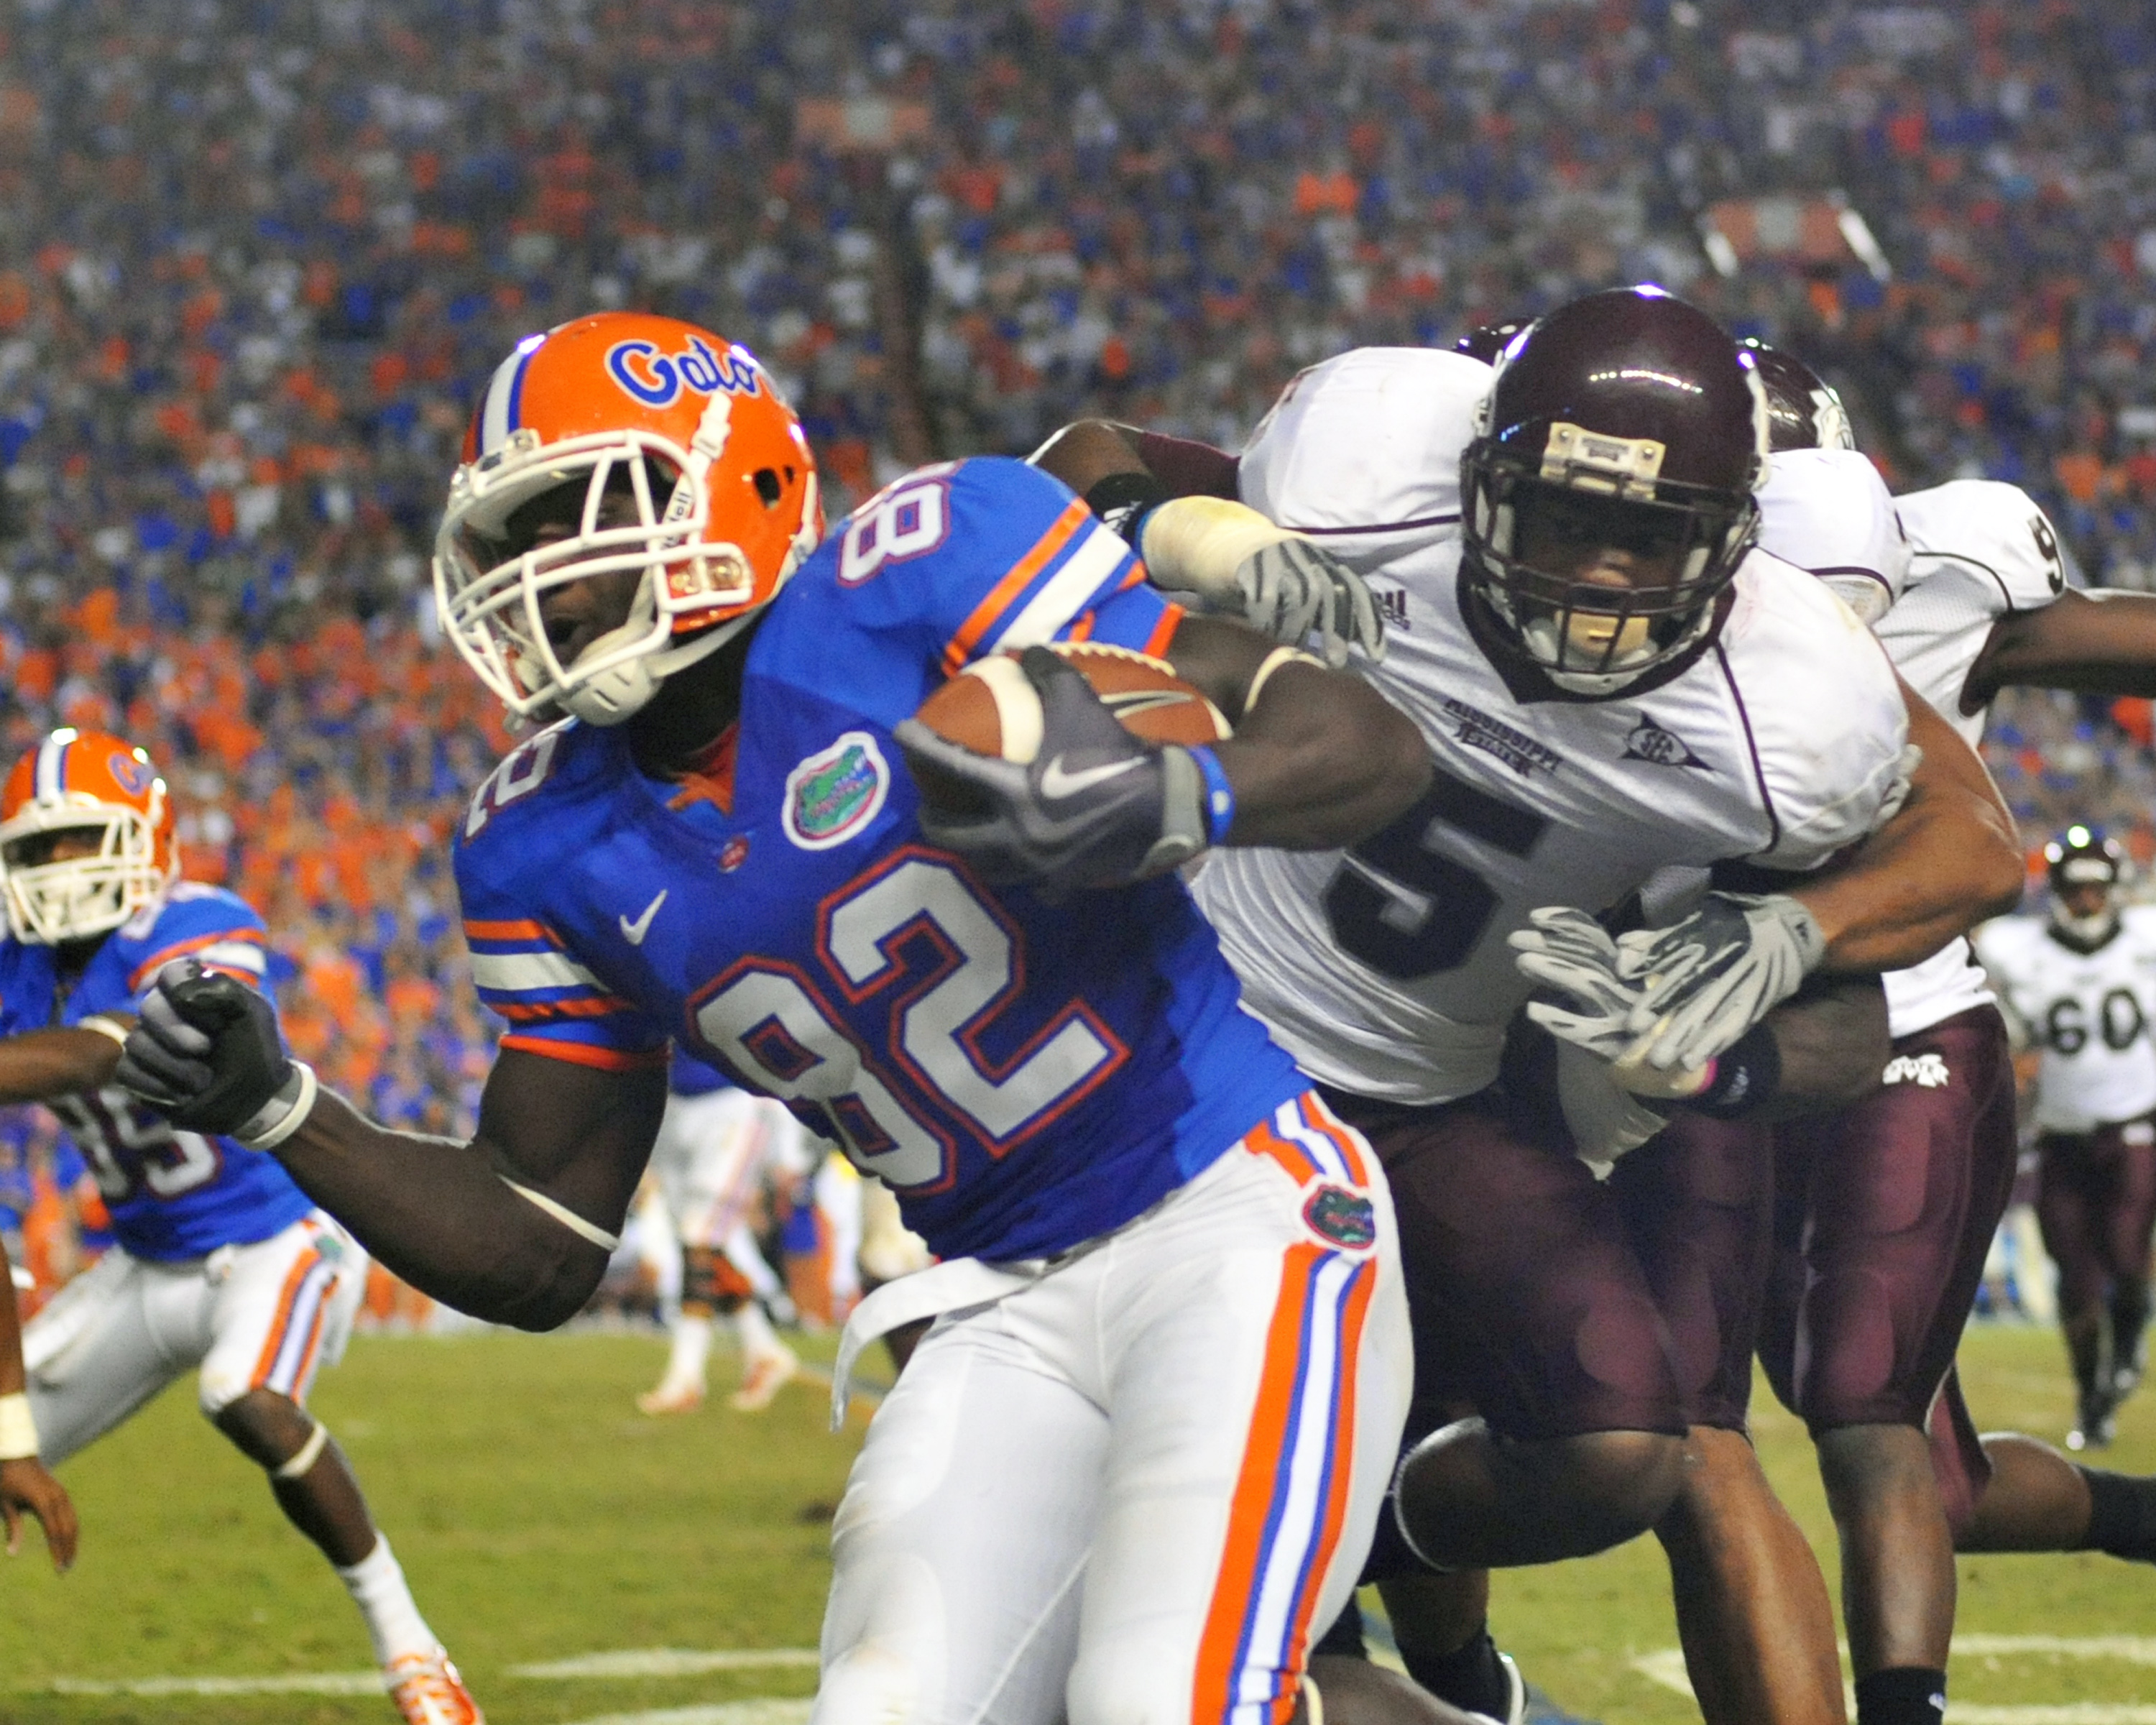 GAINESVILLE, FL - OCTOBER 16:  Wide receiver Omarius Hines #82 of the Florida Gators rushes upfield with a pass against the Mississippi State Bulldogs  October 16, 2010 Ben Hill Griffin Stadium at Gainesville, Florida.  (Photo by Al Messerschmidt/Getty Im